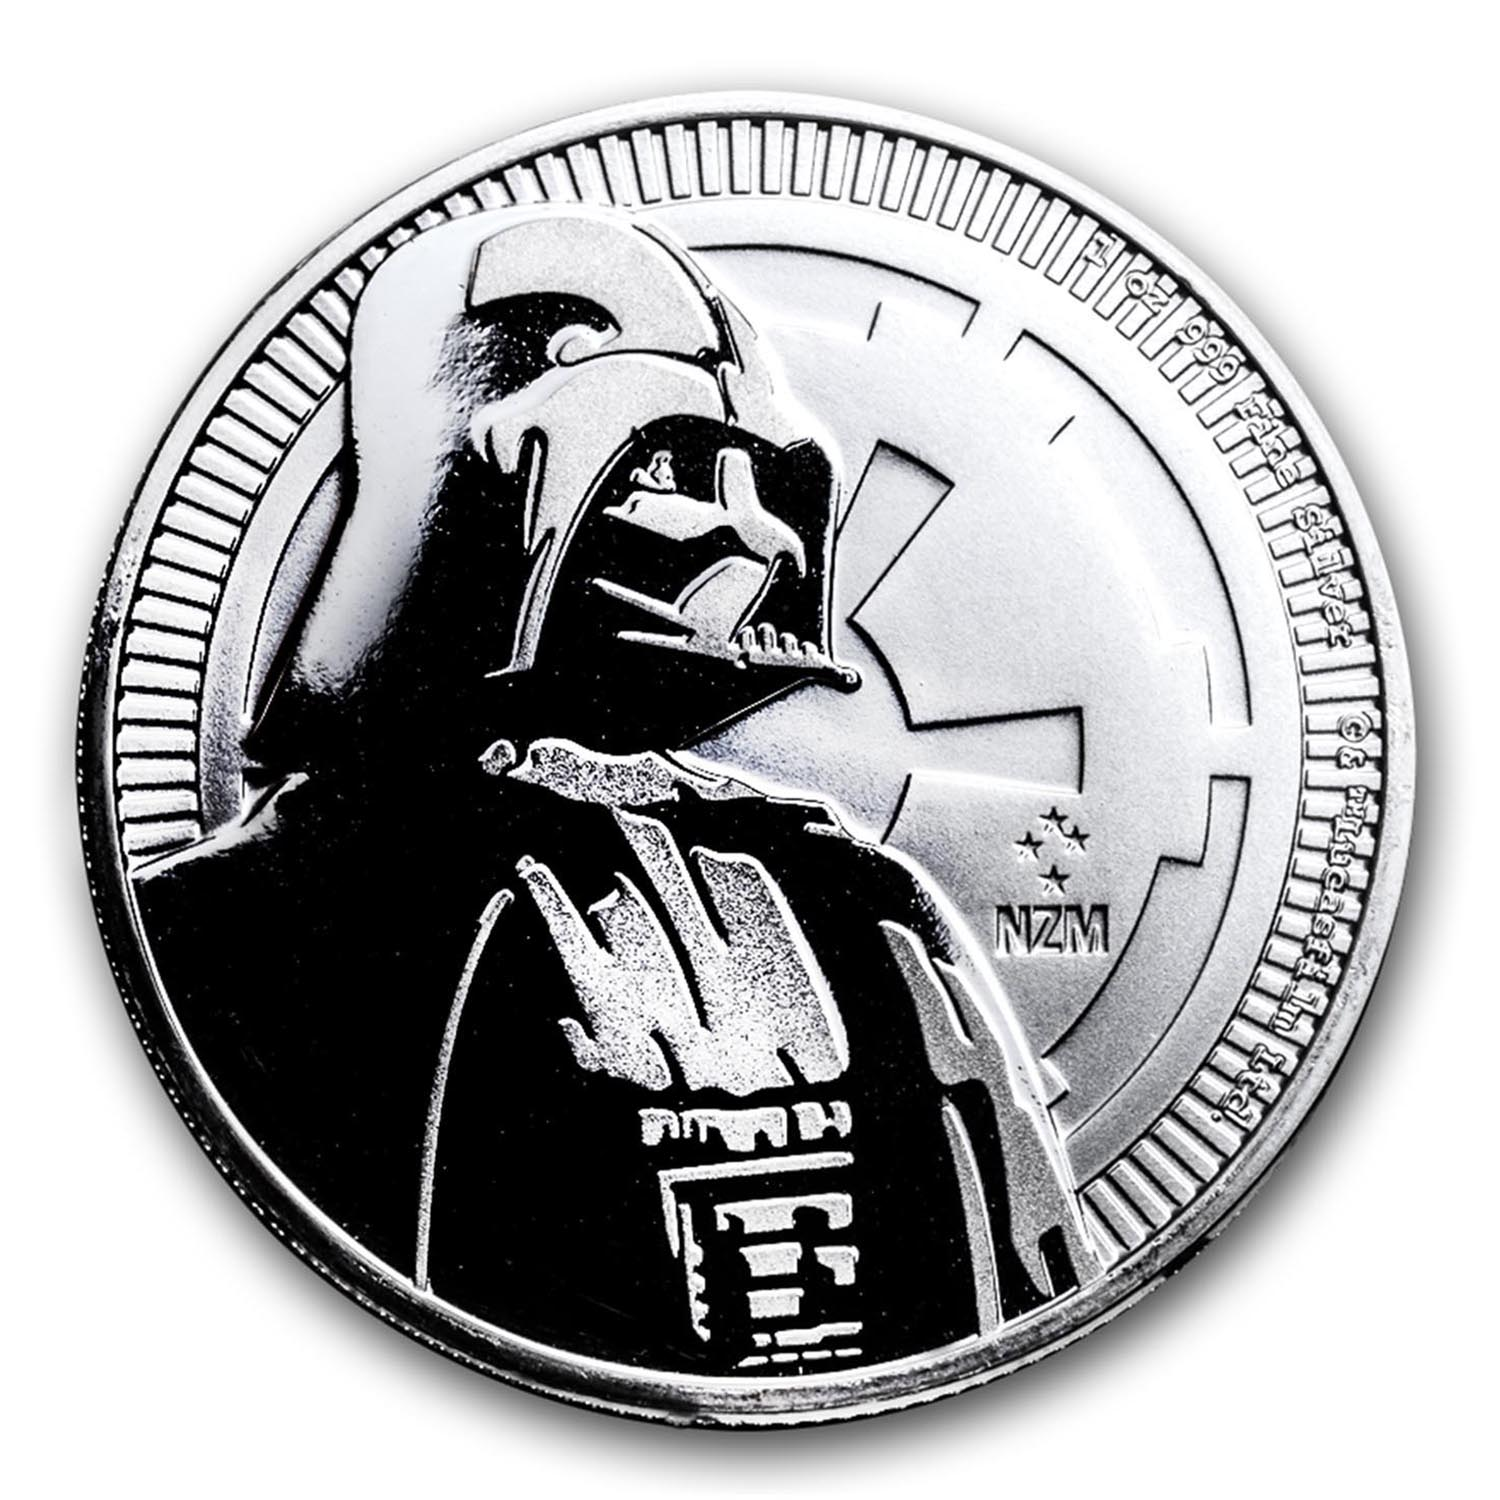 2017 Niue 1 oz Silver $2 Star Wars Darth Vader BU